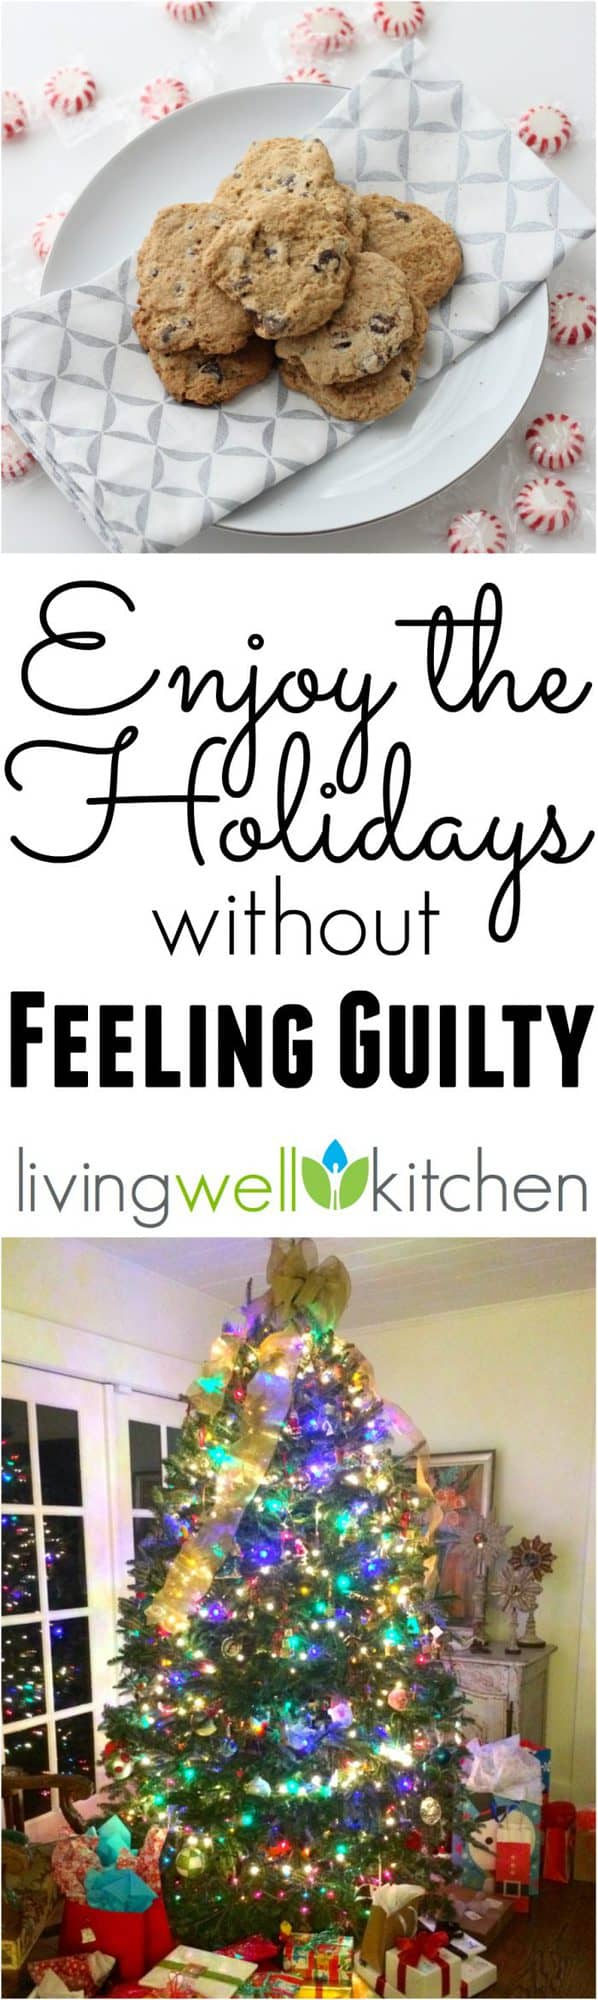 Enjoy the holidays without feeling guilty with these five tips from @memeinge to guide you in making the best choices for you and your body this Christmas season, and that includes wine, cookies, and rolls